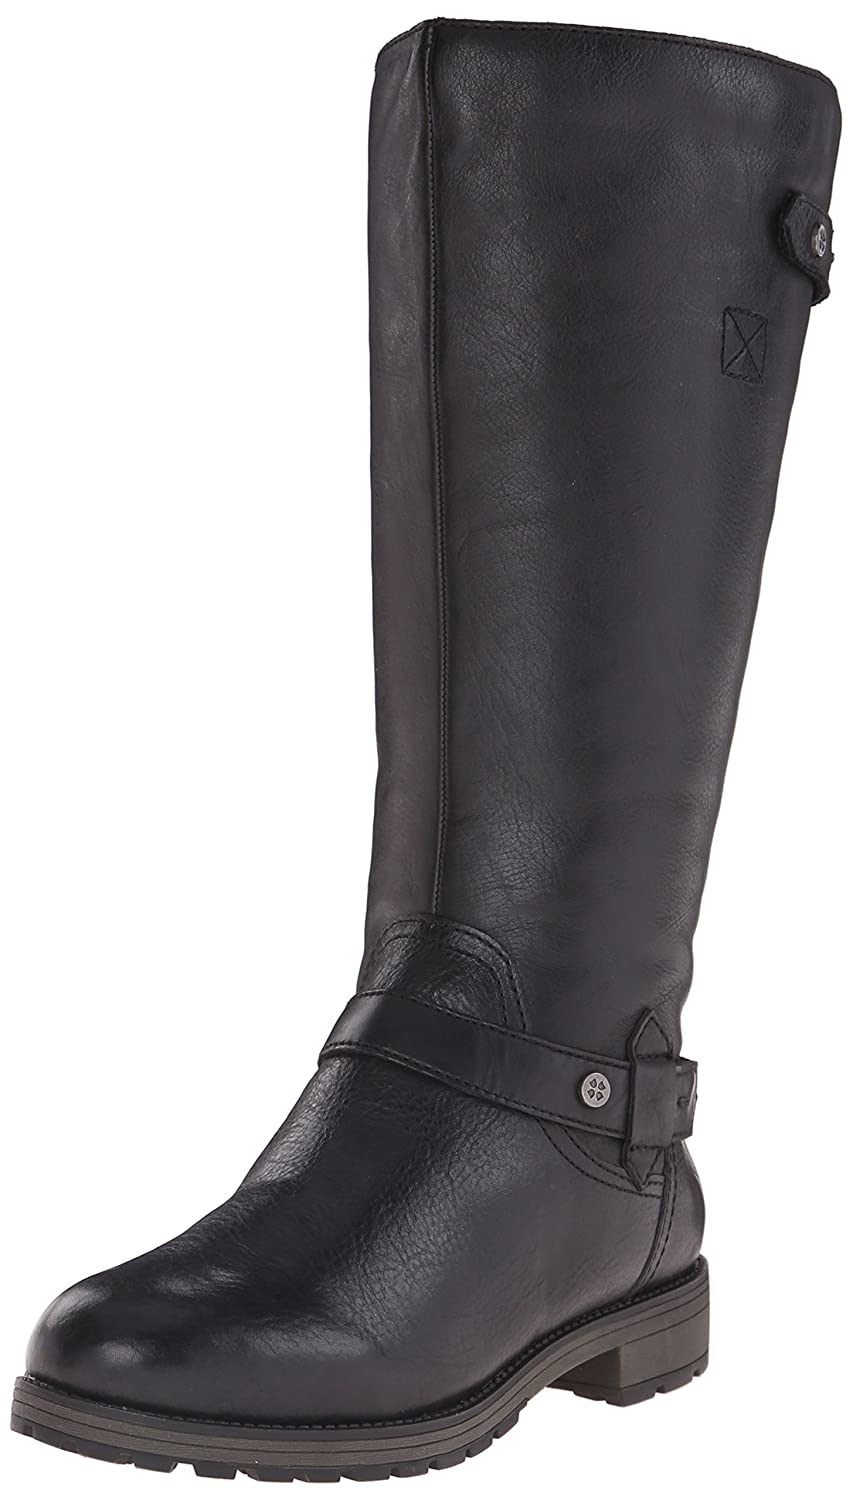 Naturalizer Women's Tanita Wide-Calf Riding Boot B00RBW04XS 7 B(M) US|Black